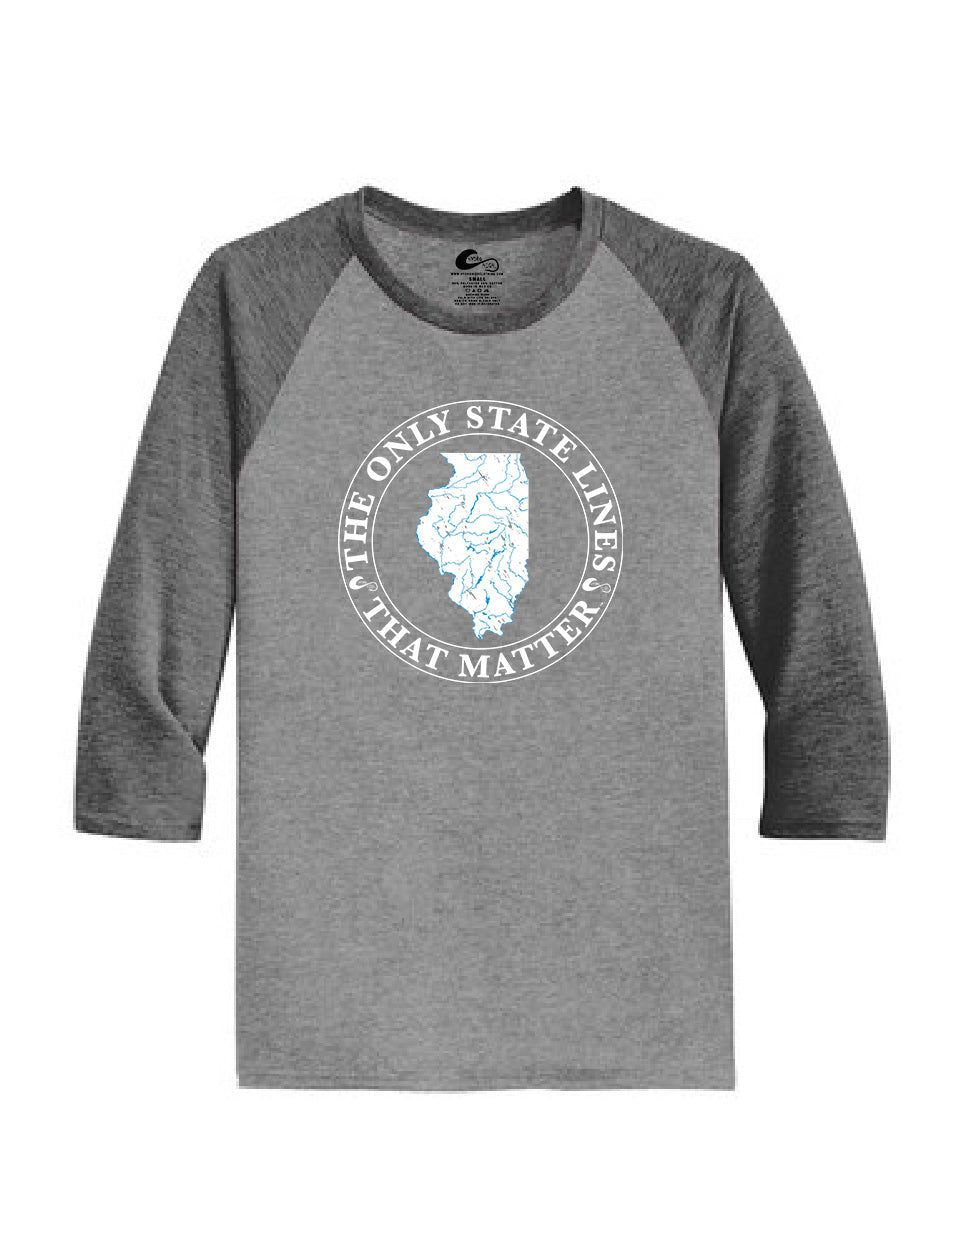 Illinois State Waterways Raglan Shirt